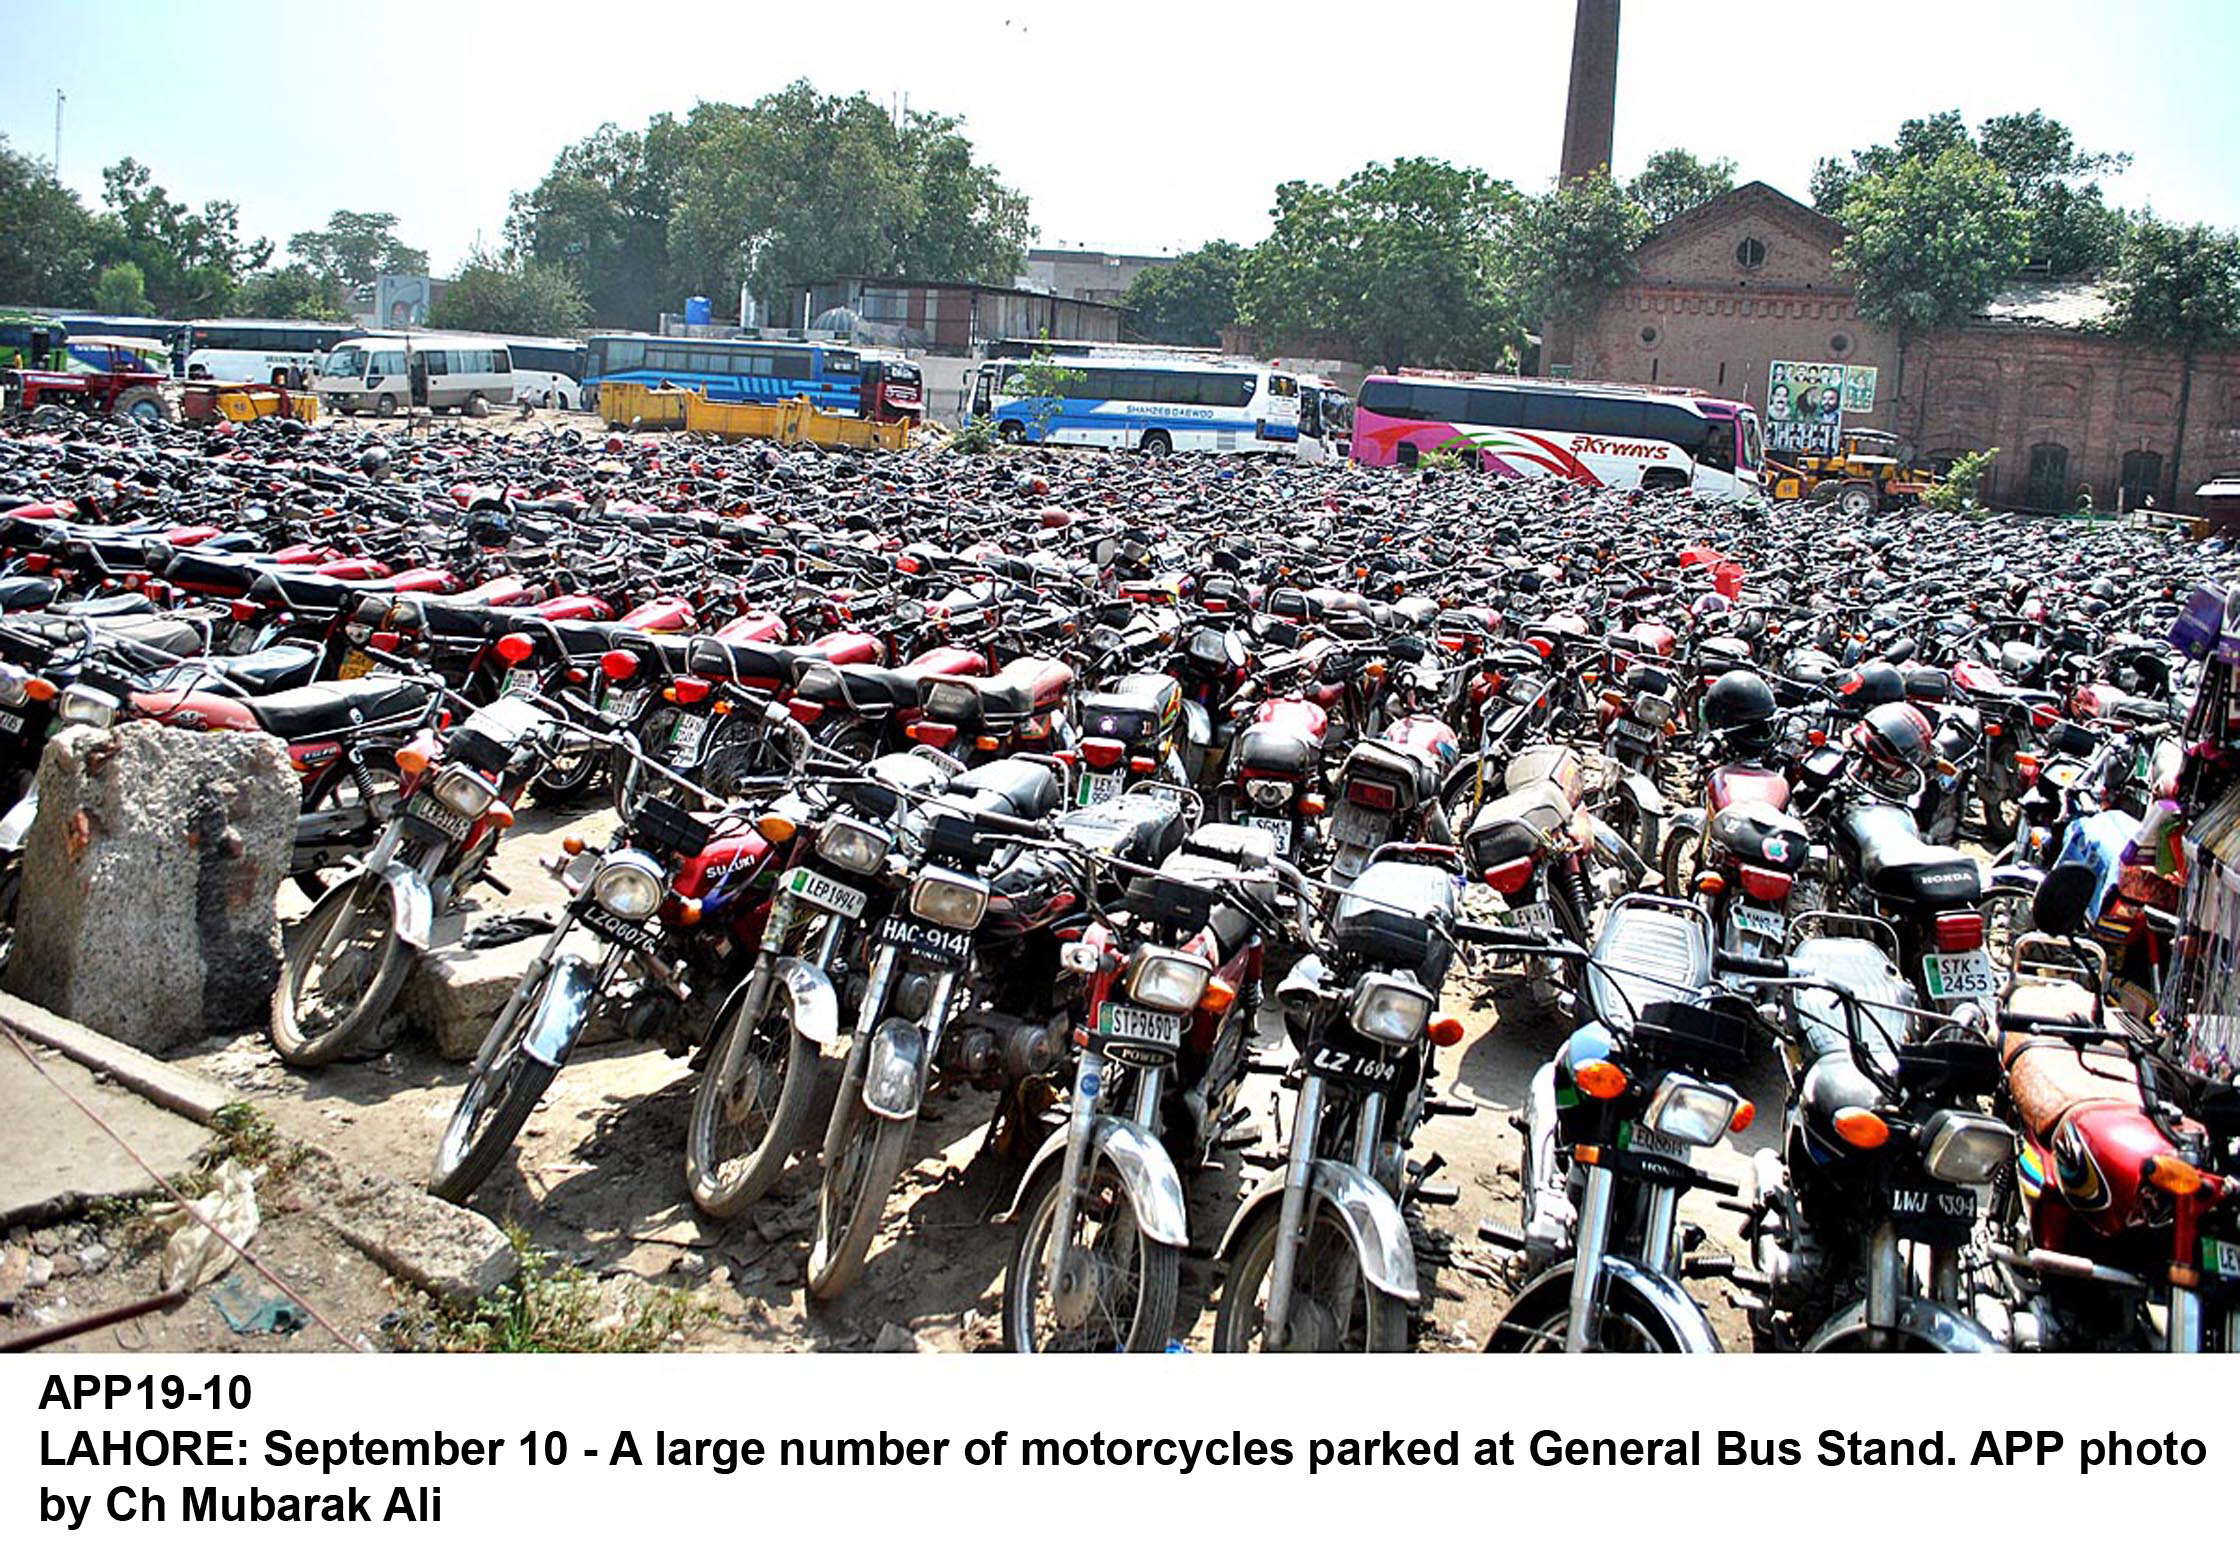 sindh s solution to motorcycle theft met with widespread dismay